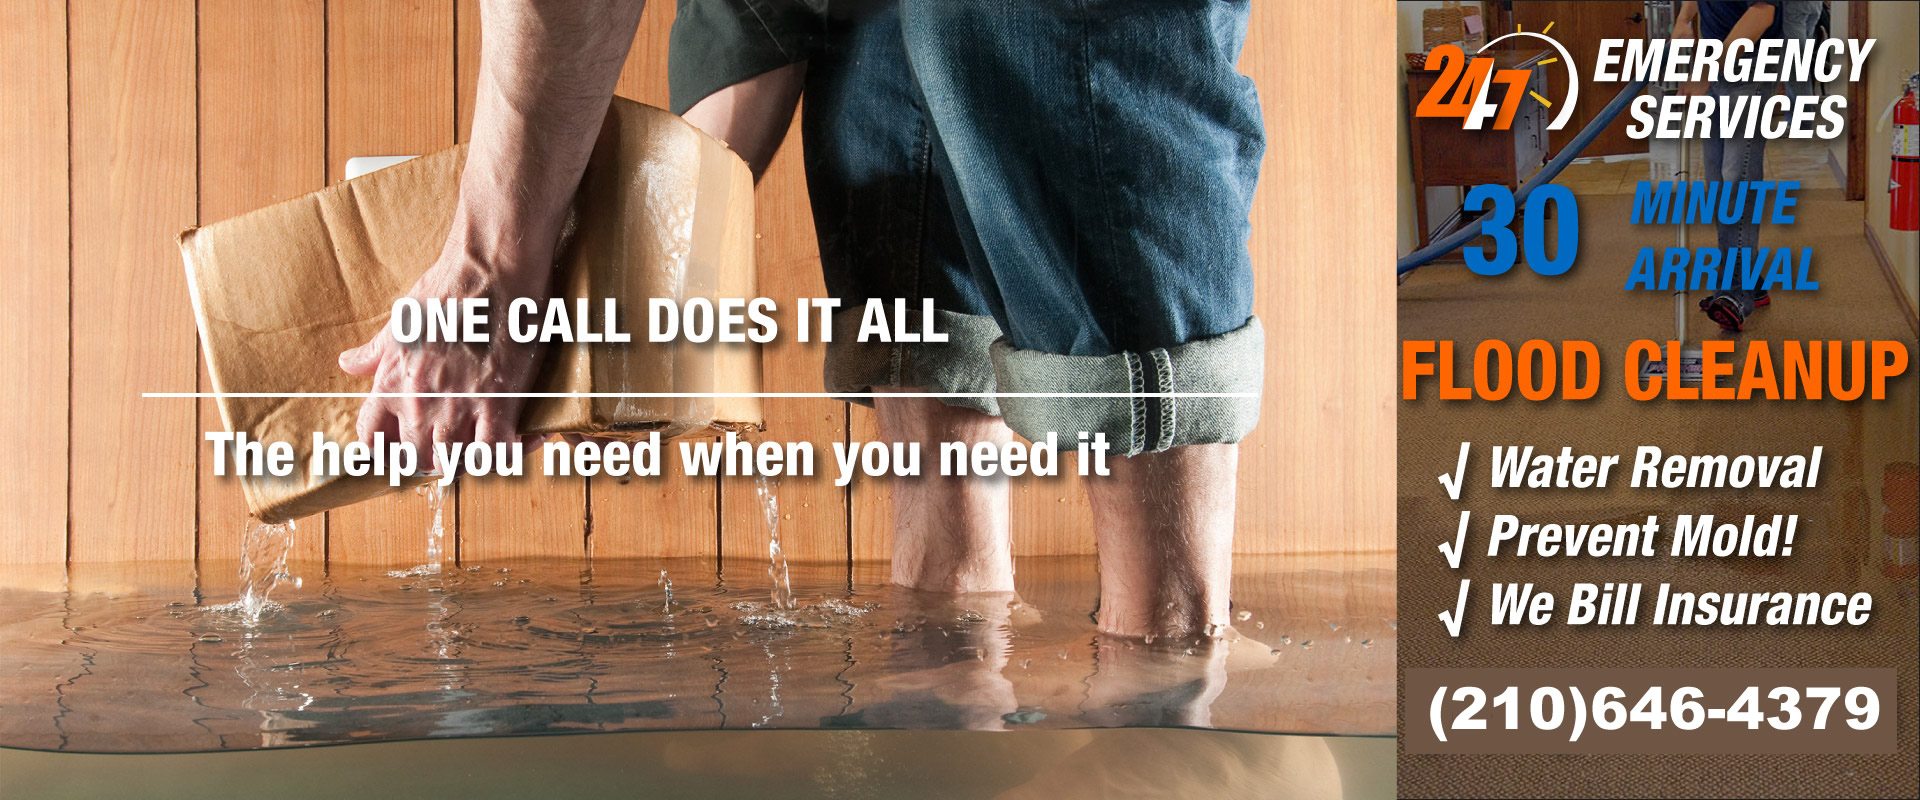 San Antonio Water Damage & Restoration